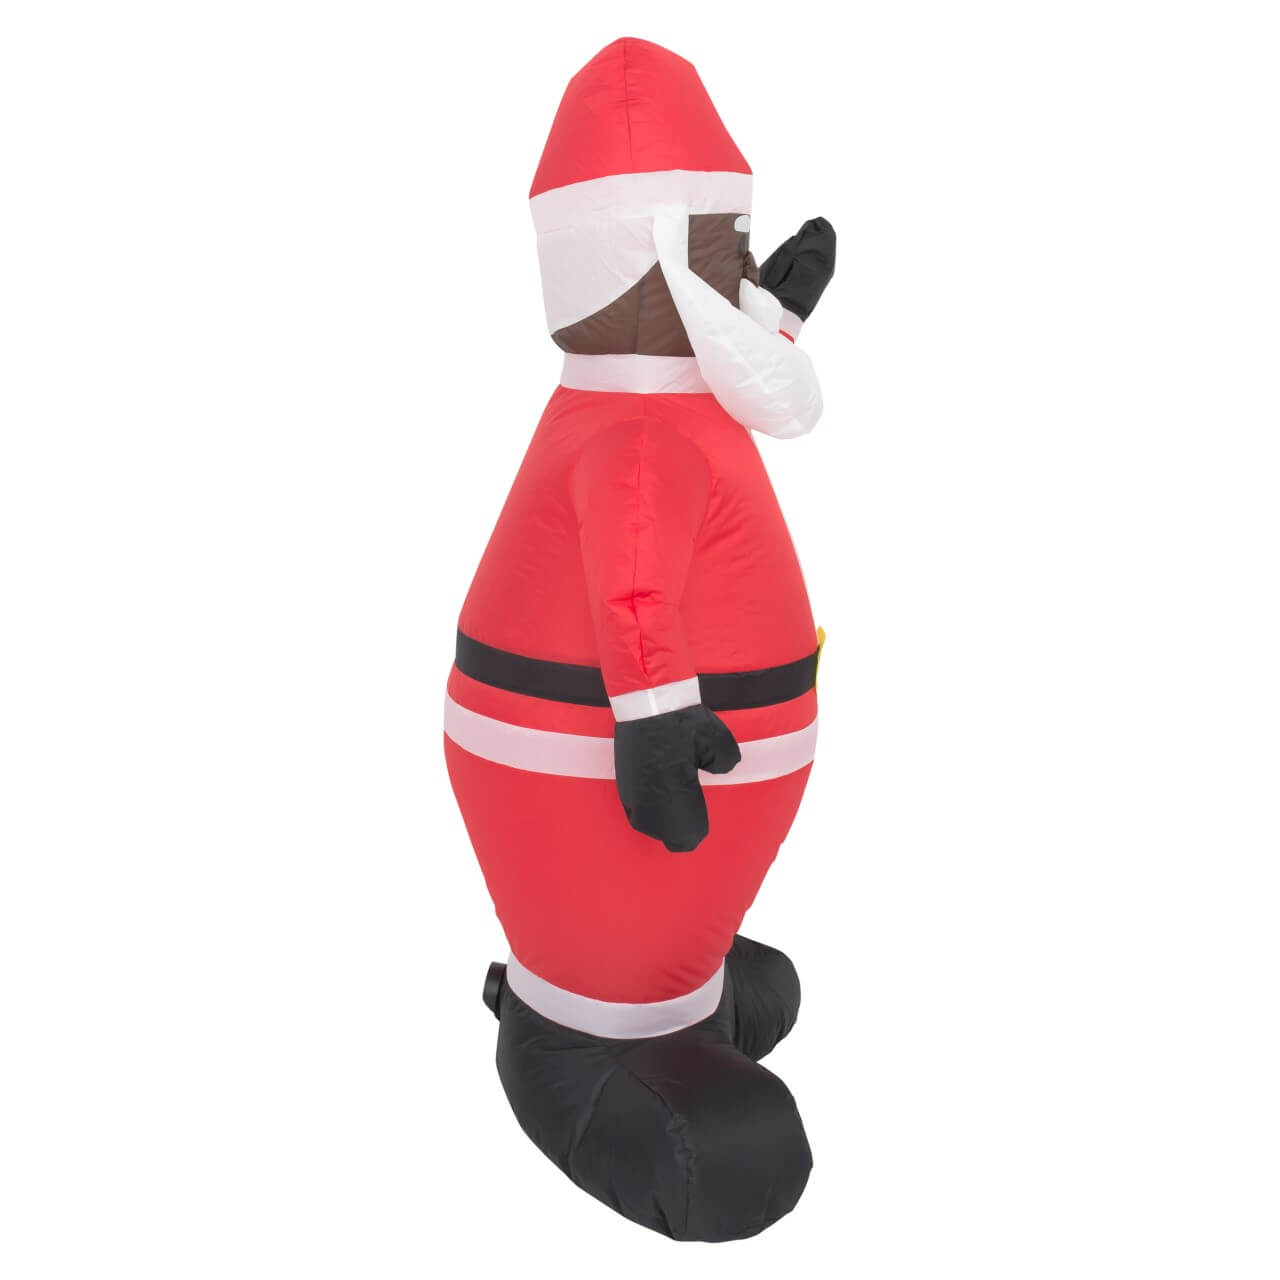 Black Santa Lawn Inflatable Decoration - Ugly Christmas Sweaters